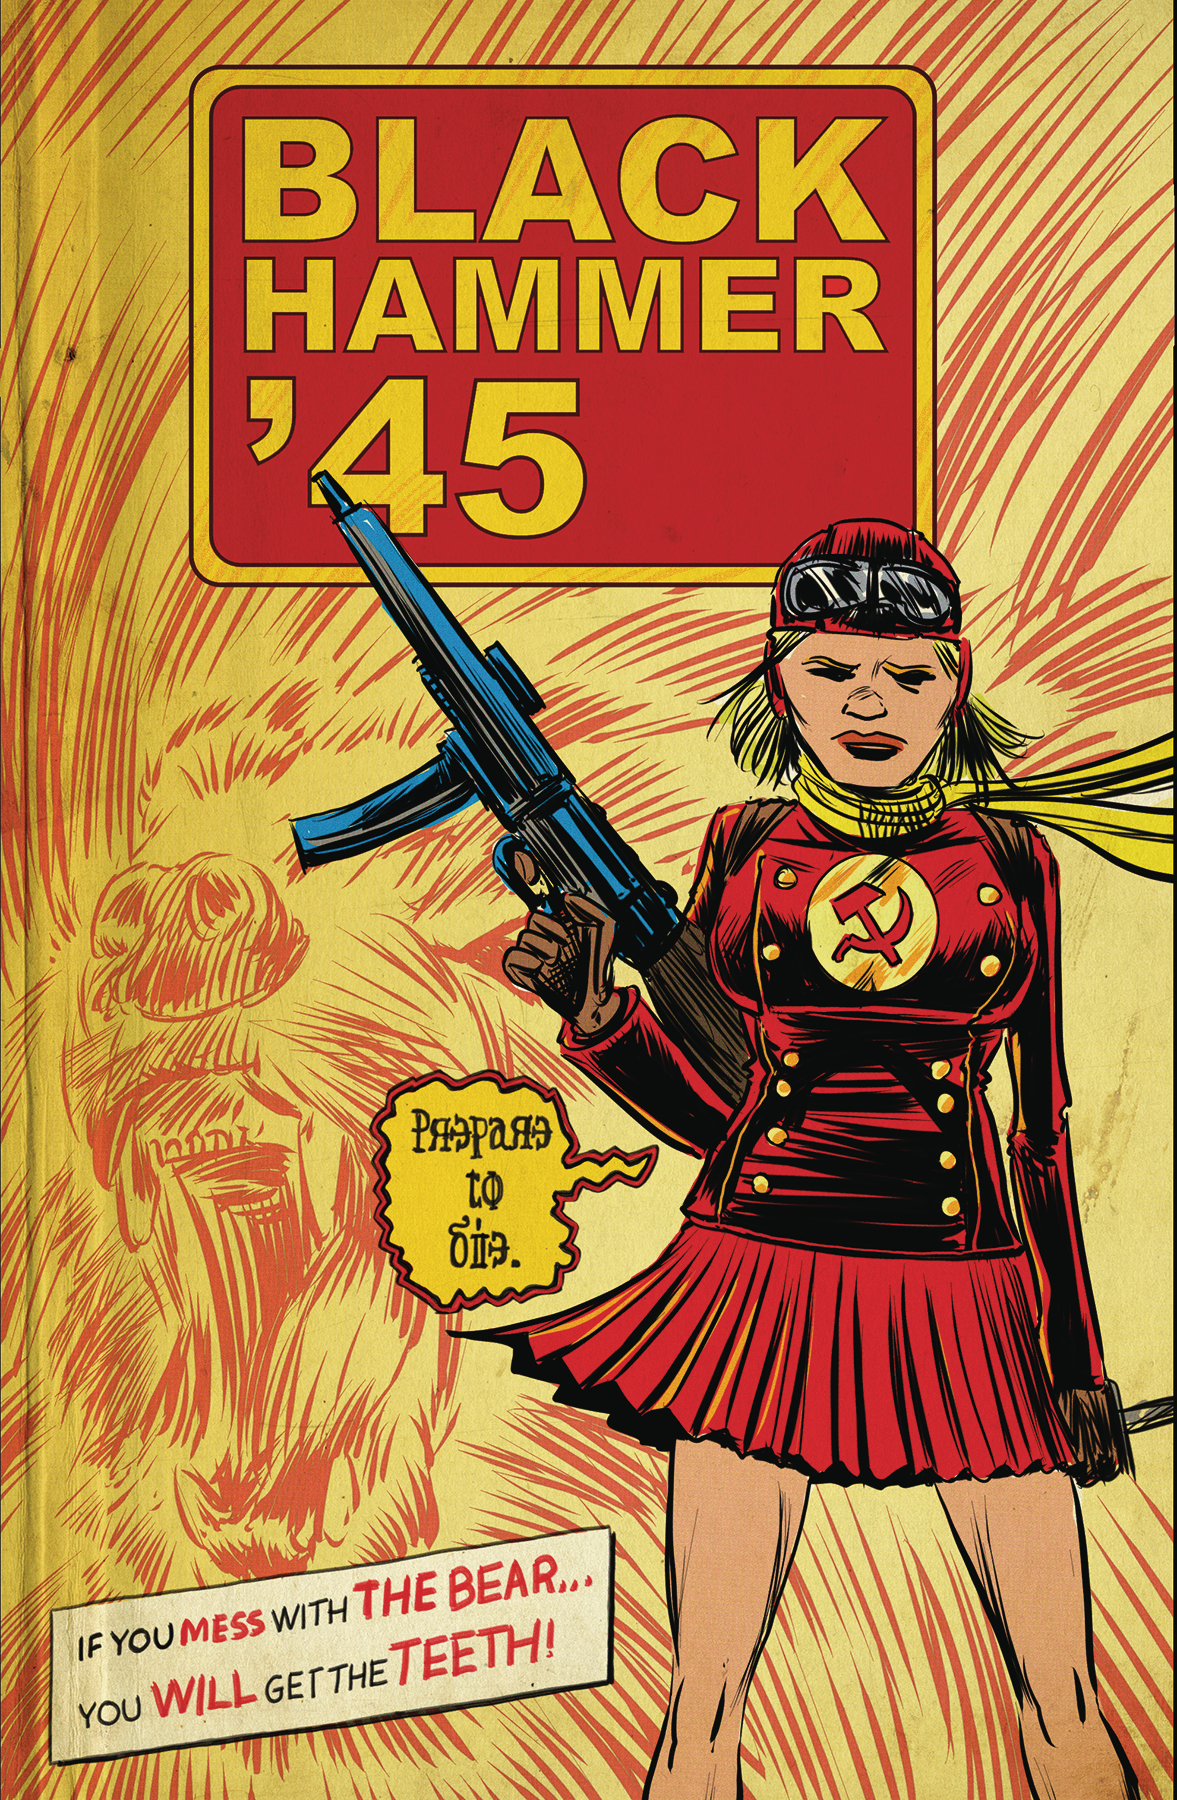 BLACK HAMMER 45 FROM WORLD OF BLACK HAMMER #3 CVR A KINDT